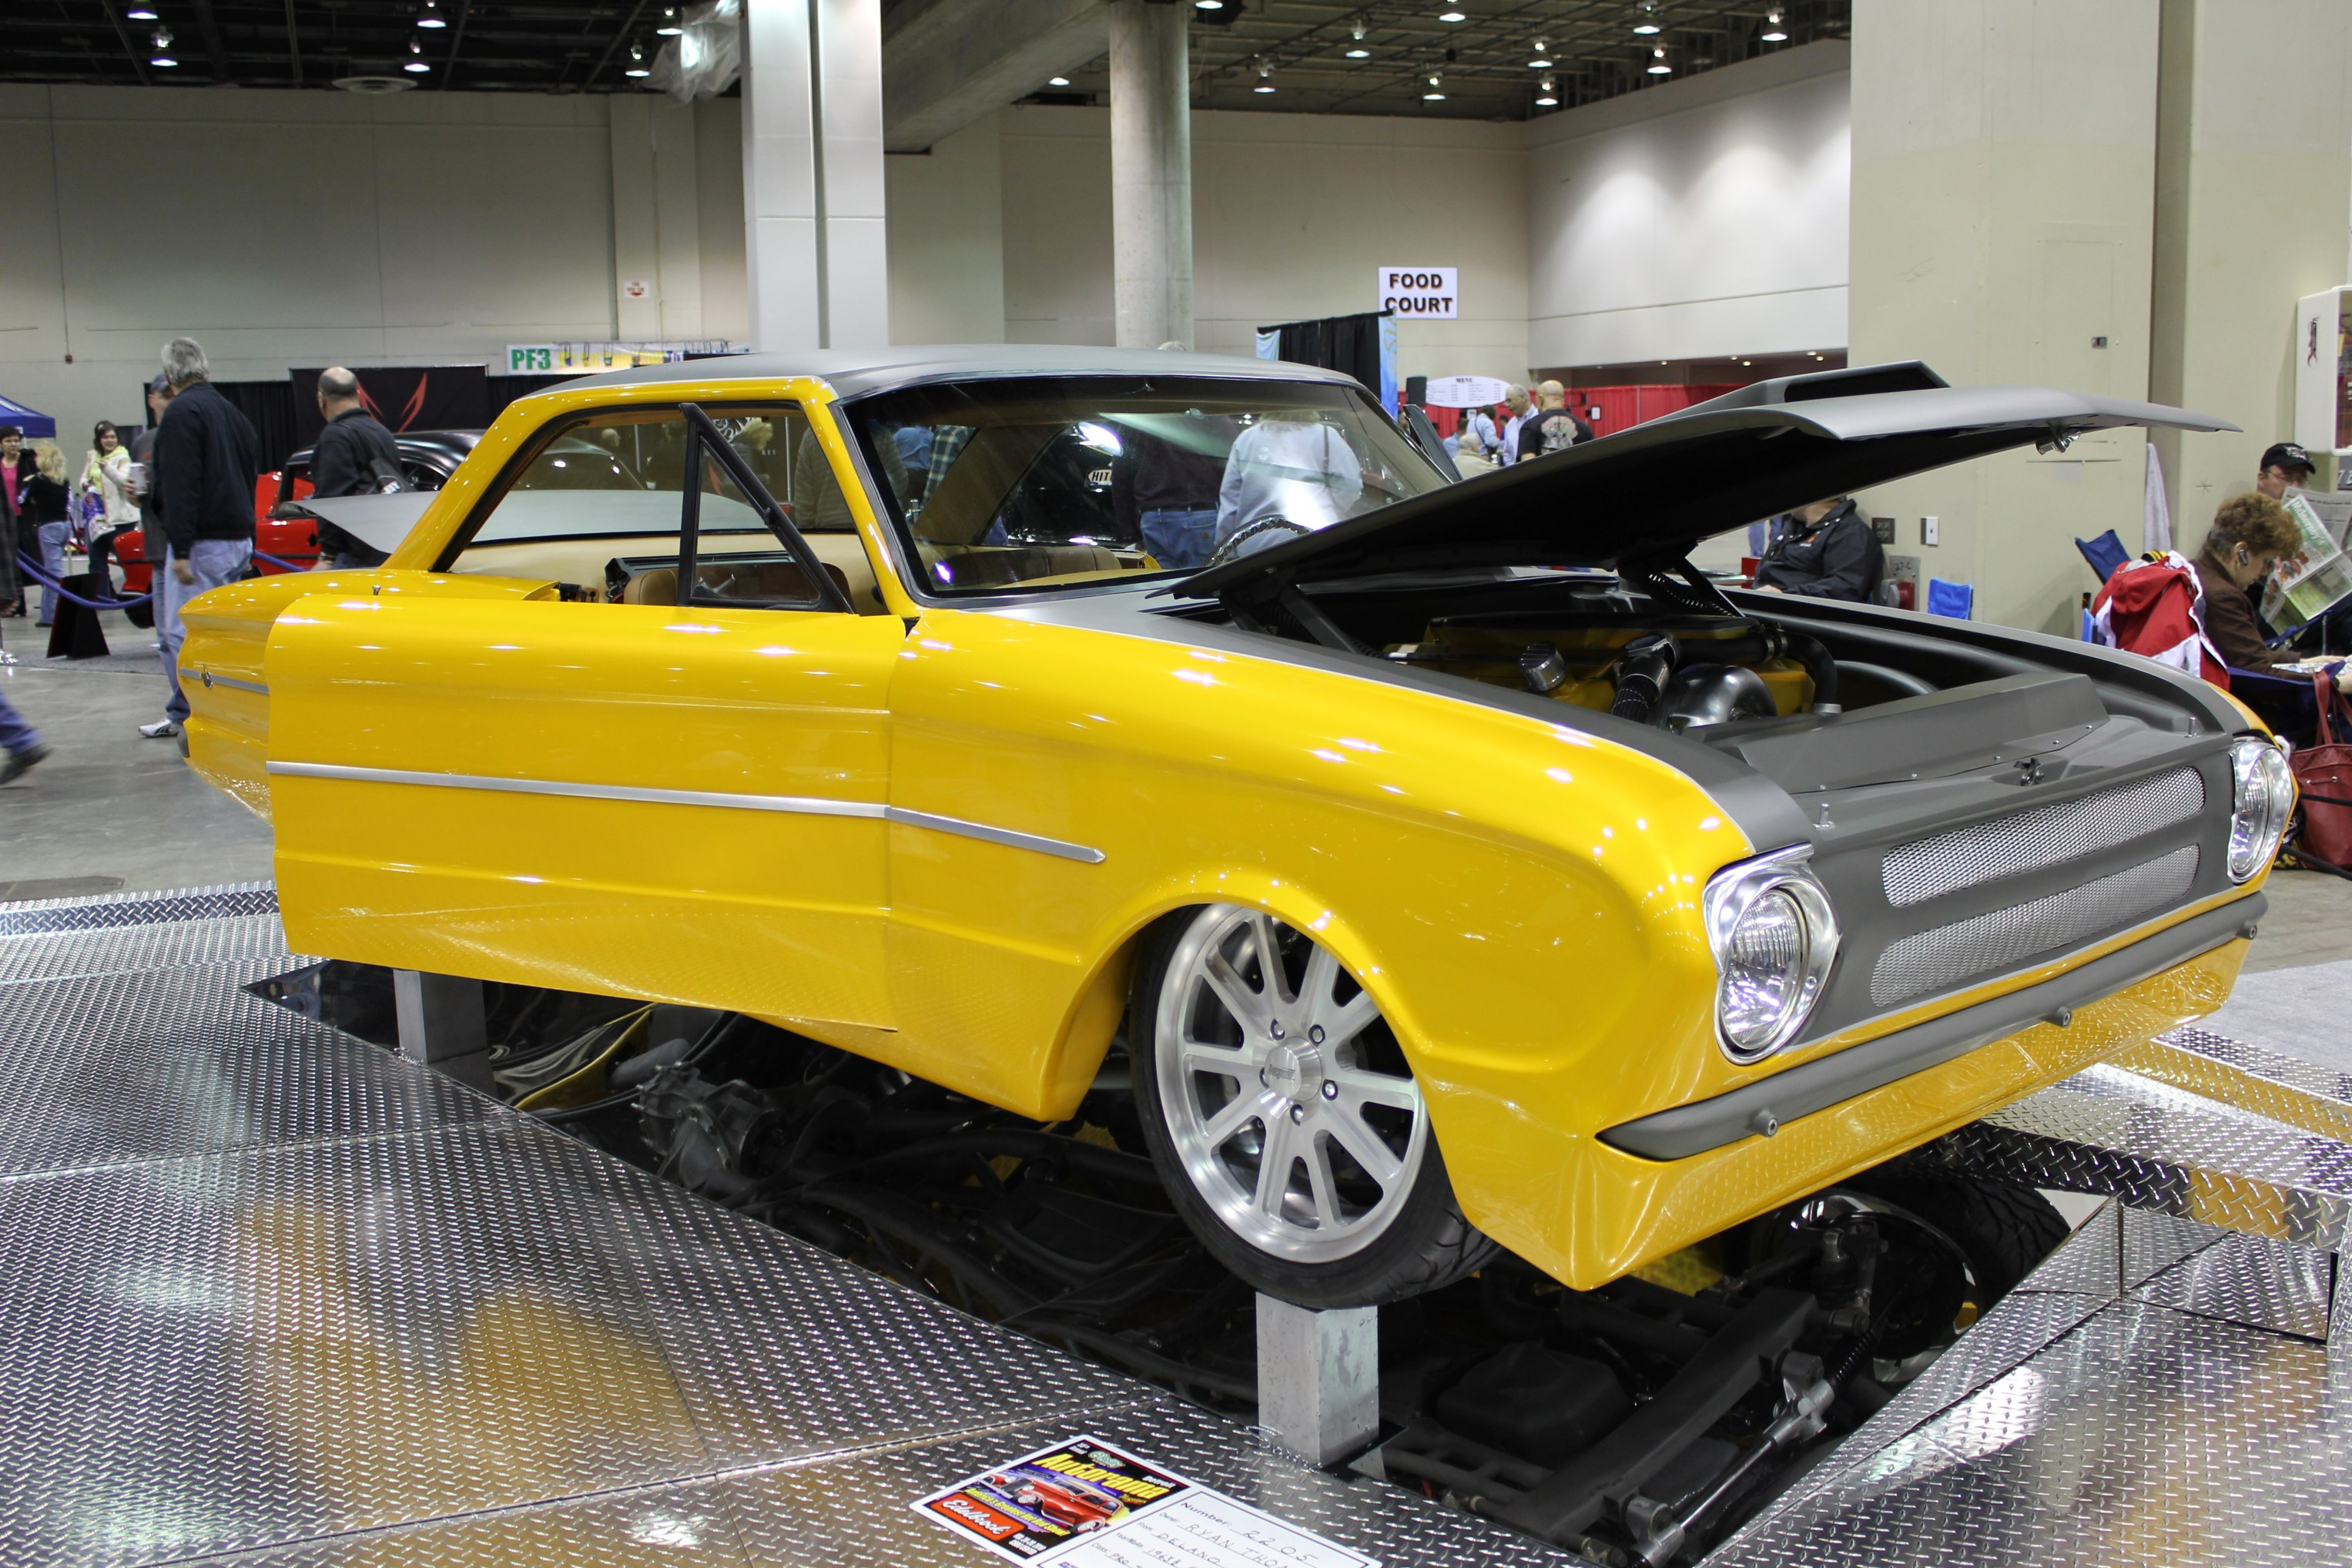 Ford Falcon muscle classic hot rod rods lowrider custom f wallpaper | 3054x2036 | 188445 | WallpaperUP